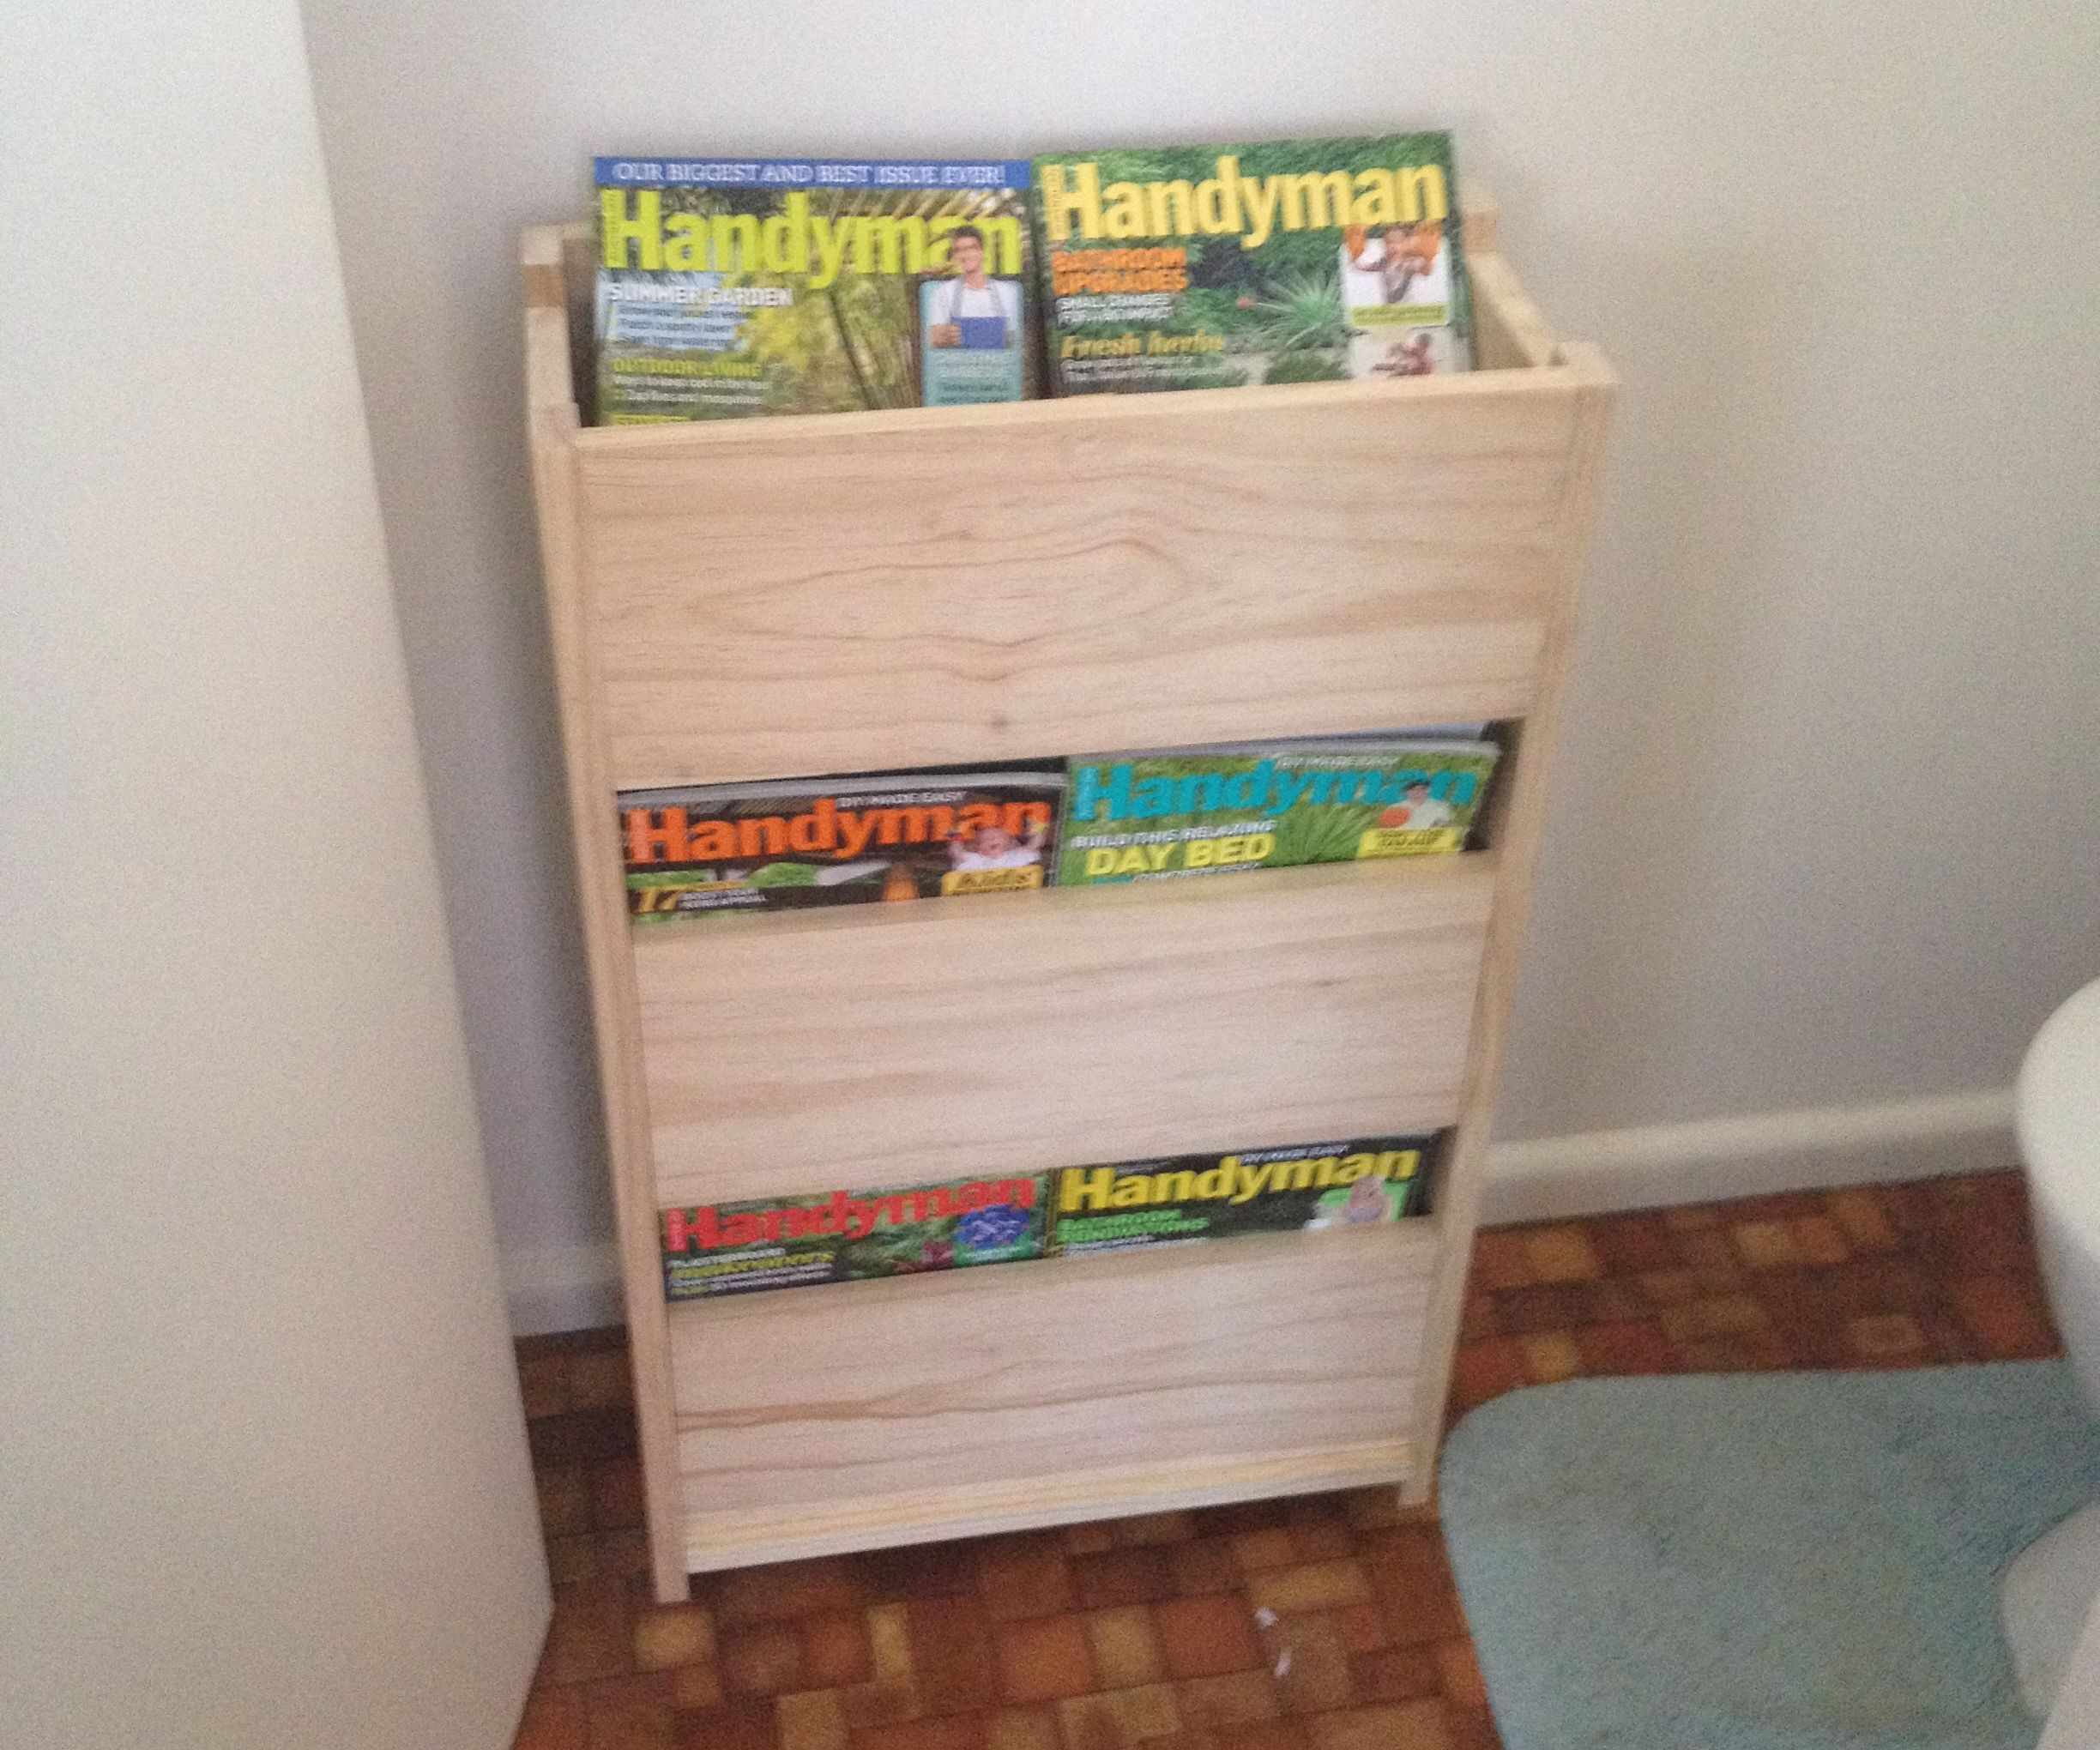 Magazine Rack (with Hidden Compartment)